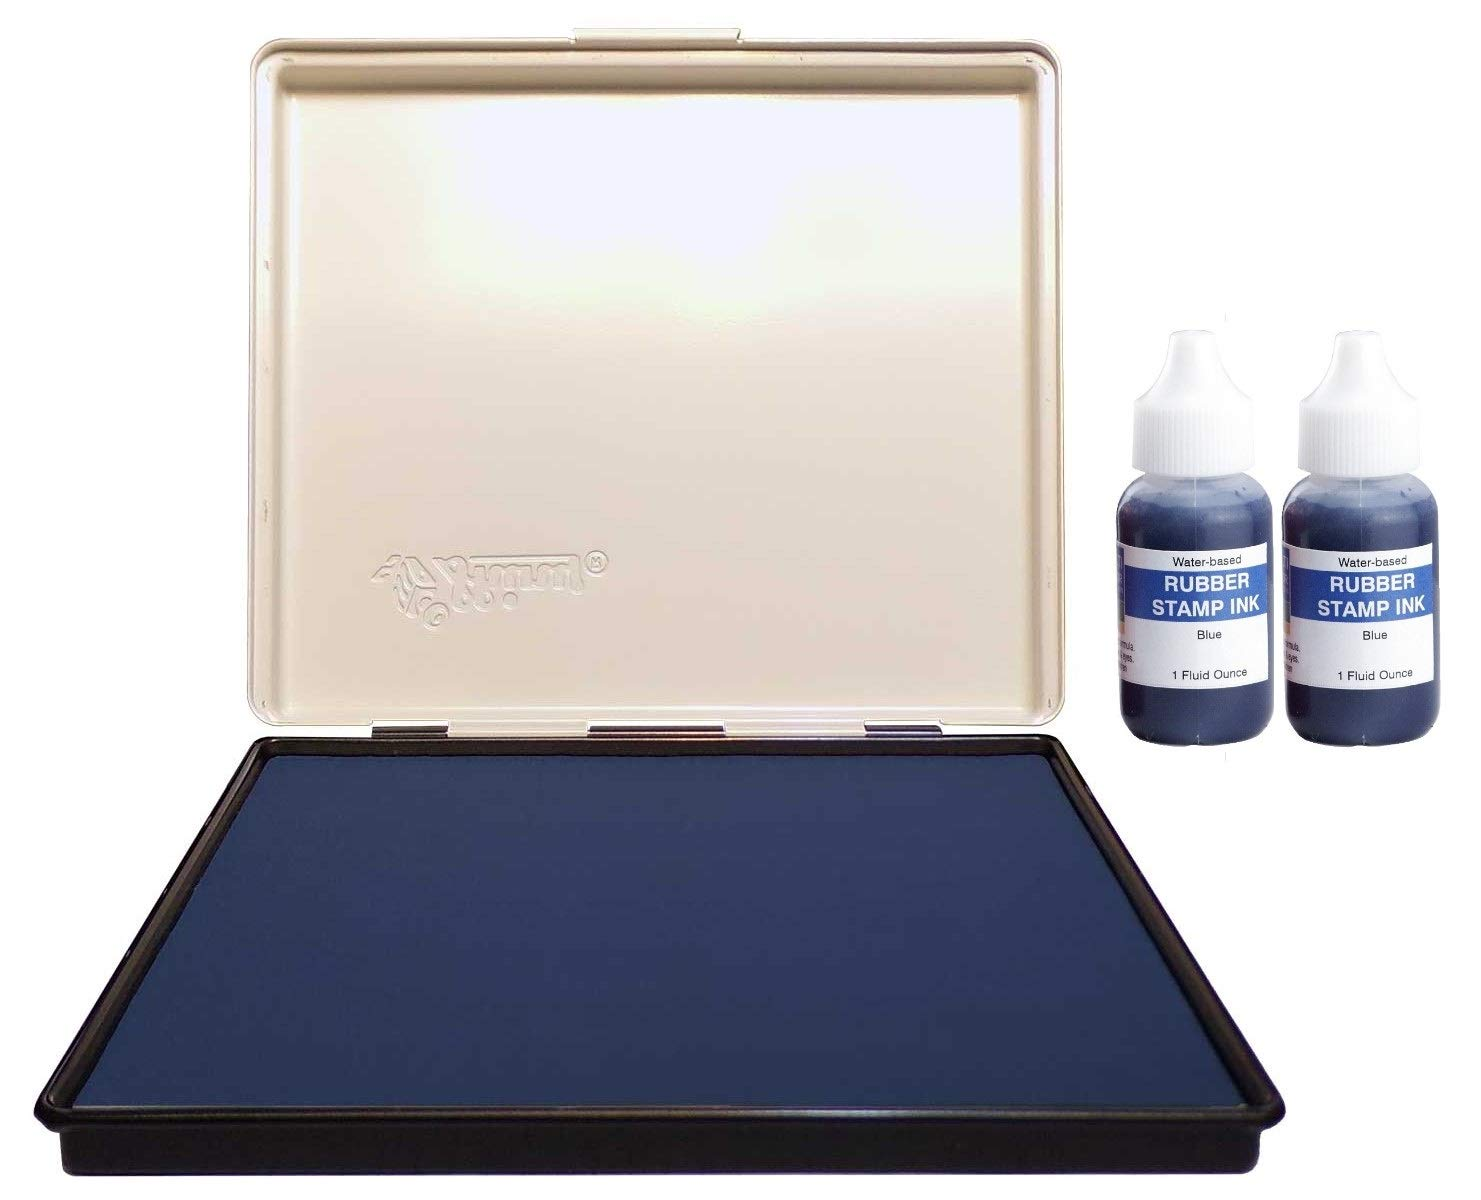 Infusion 7'' x 8'' Extra Large Industrial Stamp Ink Pad, Your Go to Large Stamp Ink Pad for Bright Color, Even Coverage and Durability, Blue Stamp Pad by Infusion